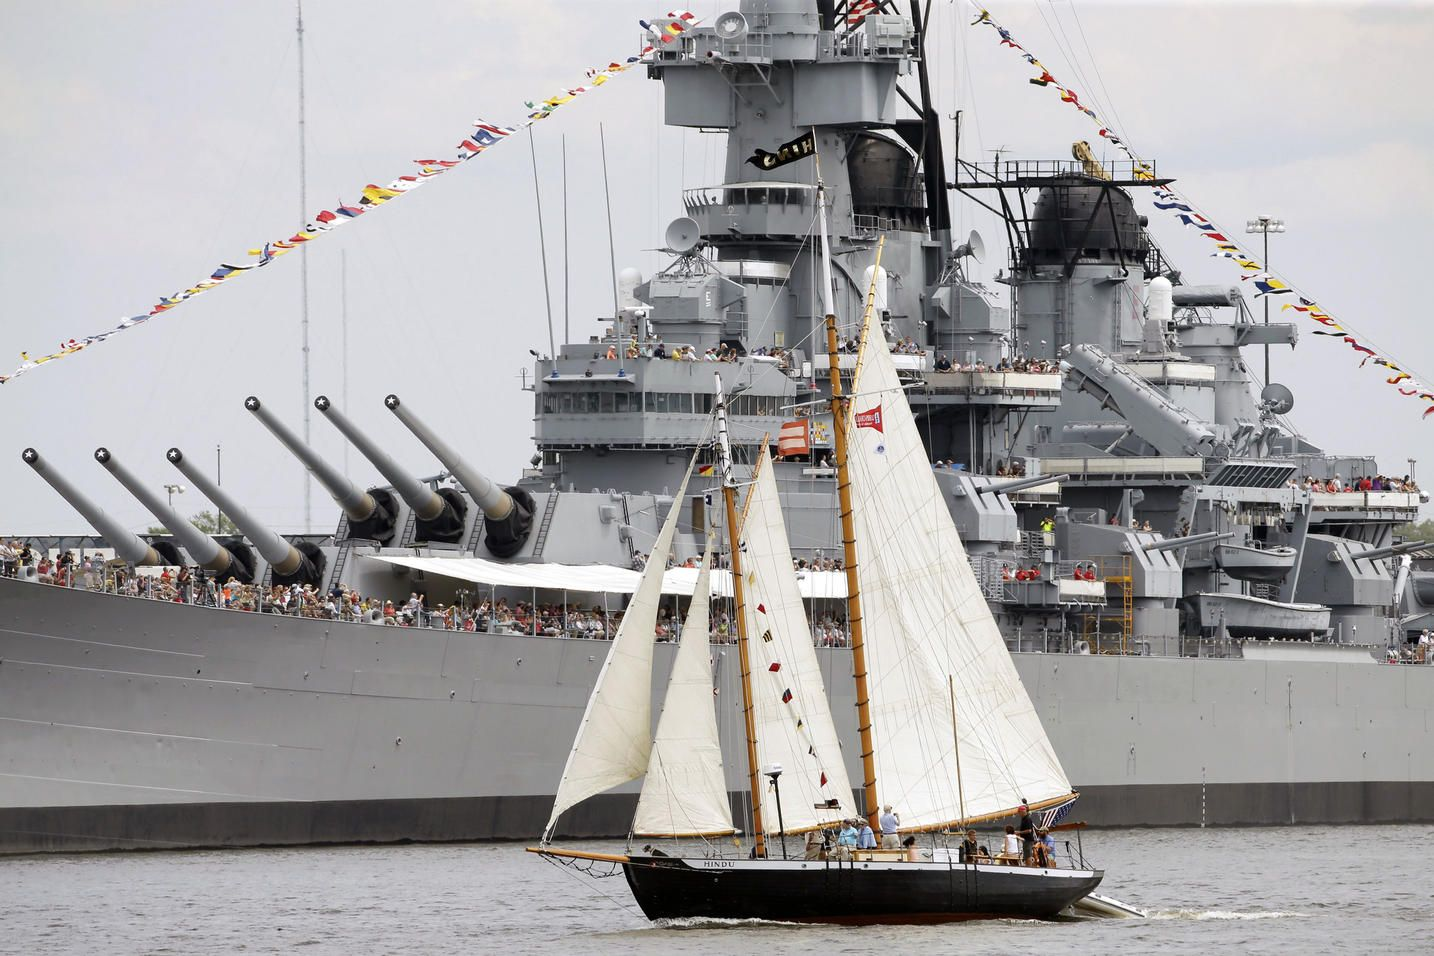 The schooner Hindu sails up the Delaware River between Camden, N.J. and Philadelphia past the USS New Jersey during a tall ships parade, Thursday, June 25, 2015. A tall ship festival is scheduled to be open to the public through Sunday, June 28. Organizers say the event on both sides of the river will allow people a close-up view of famed ships such as the French vessel L'Hermione, Brazilian vessel Cisne Branco, Canadian Barque Picton Castle, and Philadelphia's own Gazela.